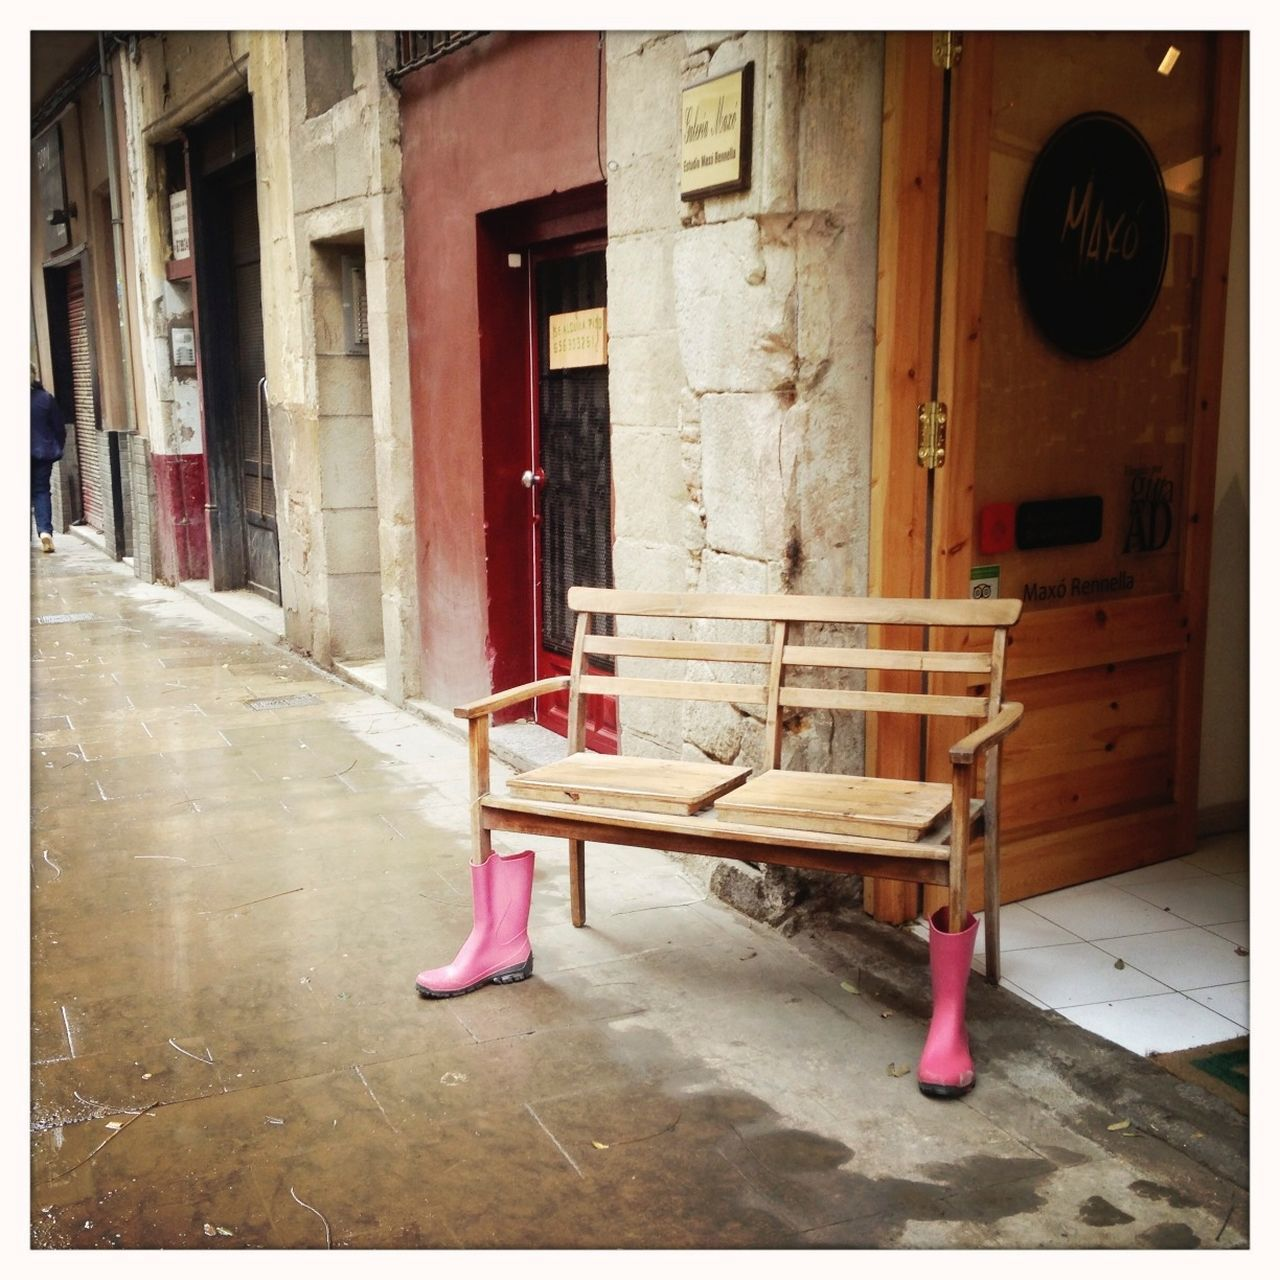 When it gets wet in Barcelona... Street Life Rainy Days Streetphotography Fun Bench Rubber Boots Boots When It's Raining Deceptively Simple